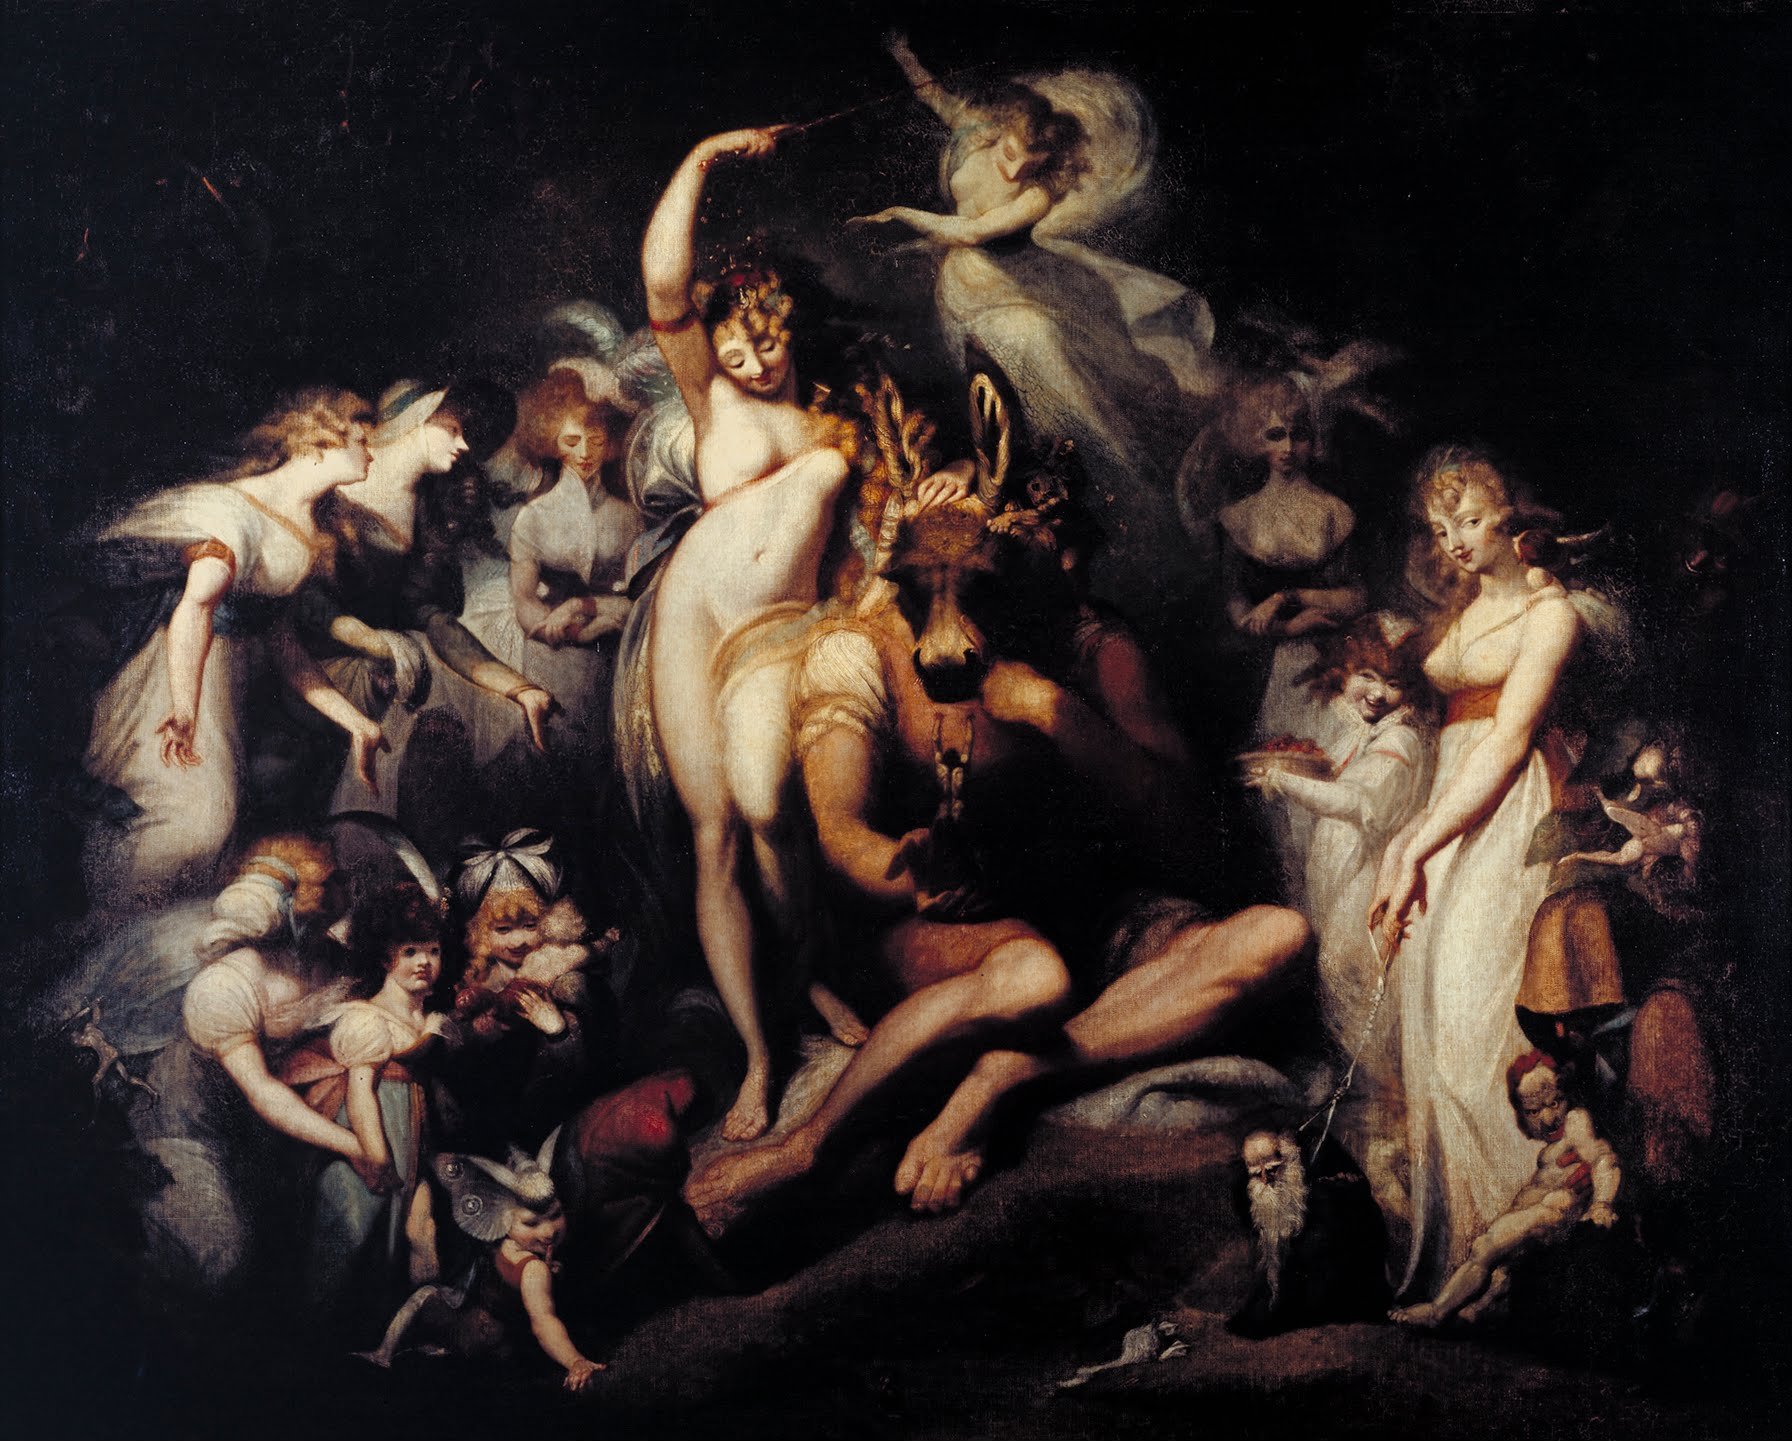 """Titania and Bottom"", one of Fuseli's grand paintings of literary fairies. https://commons.wikimedia.org/w/index.php?curid=13420586"